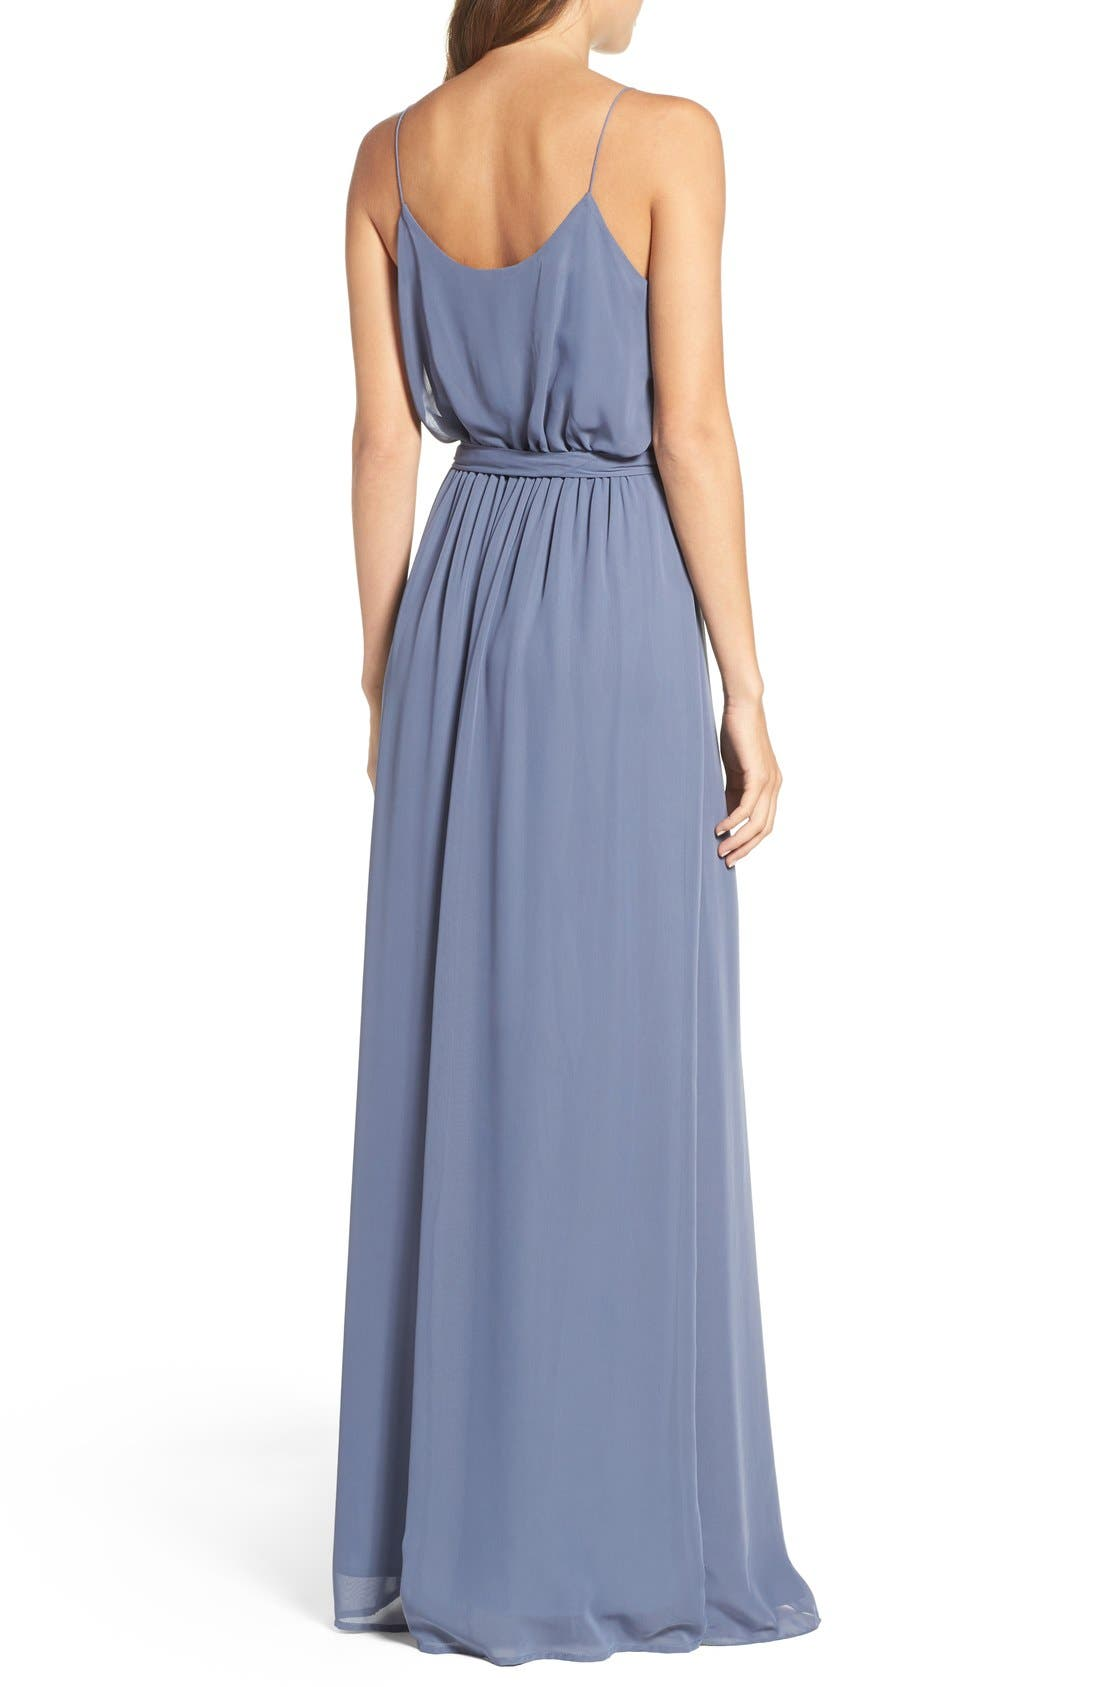 'Drew' Ruffle Front Chiffon Gown,                             Alternate thumbnail 3, color,                             Blue Steel